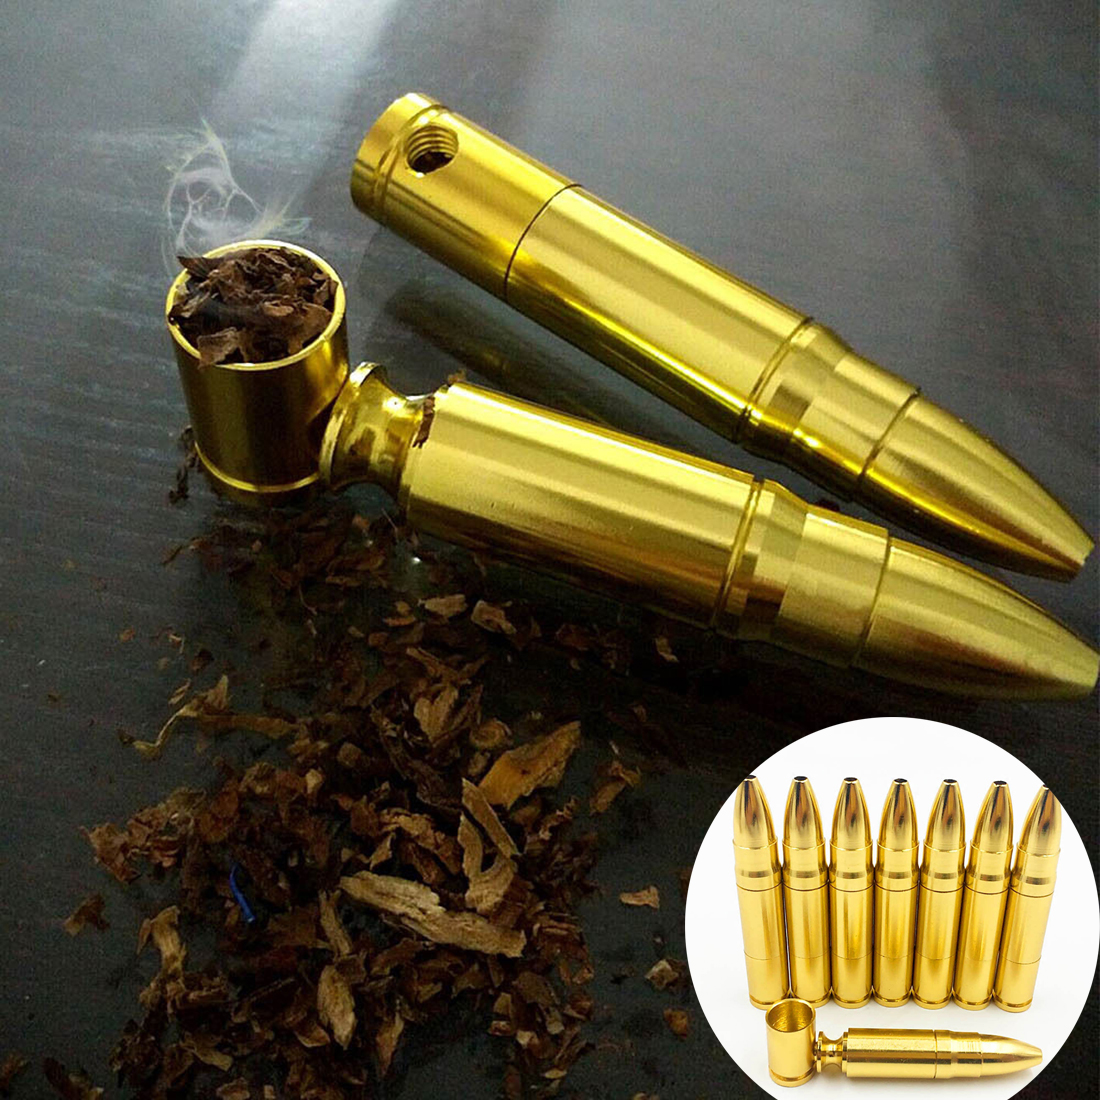 1x Portable Metal Aluminum Smoking Pipe Pocket Smoke Pipes Bullet Shaped Rocket Obacco Pipe Smoking Mini Metal Screw Gif